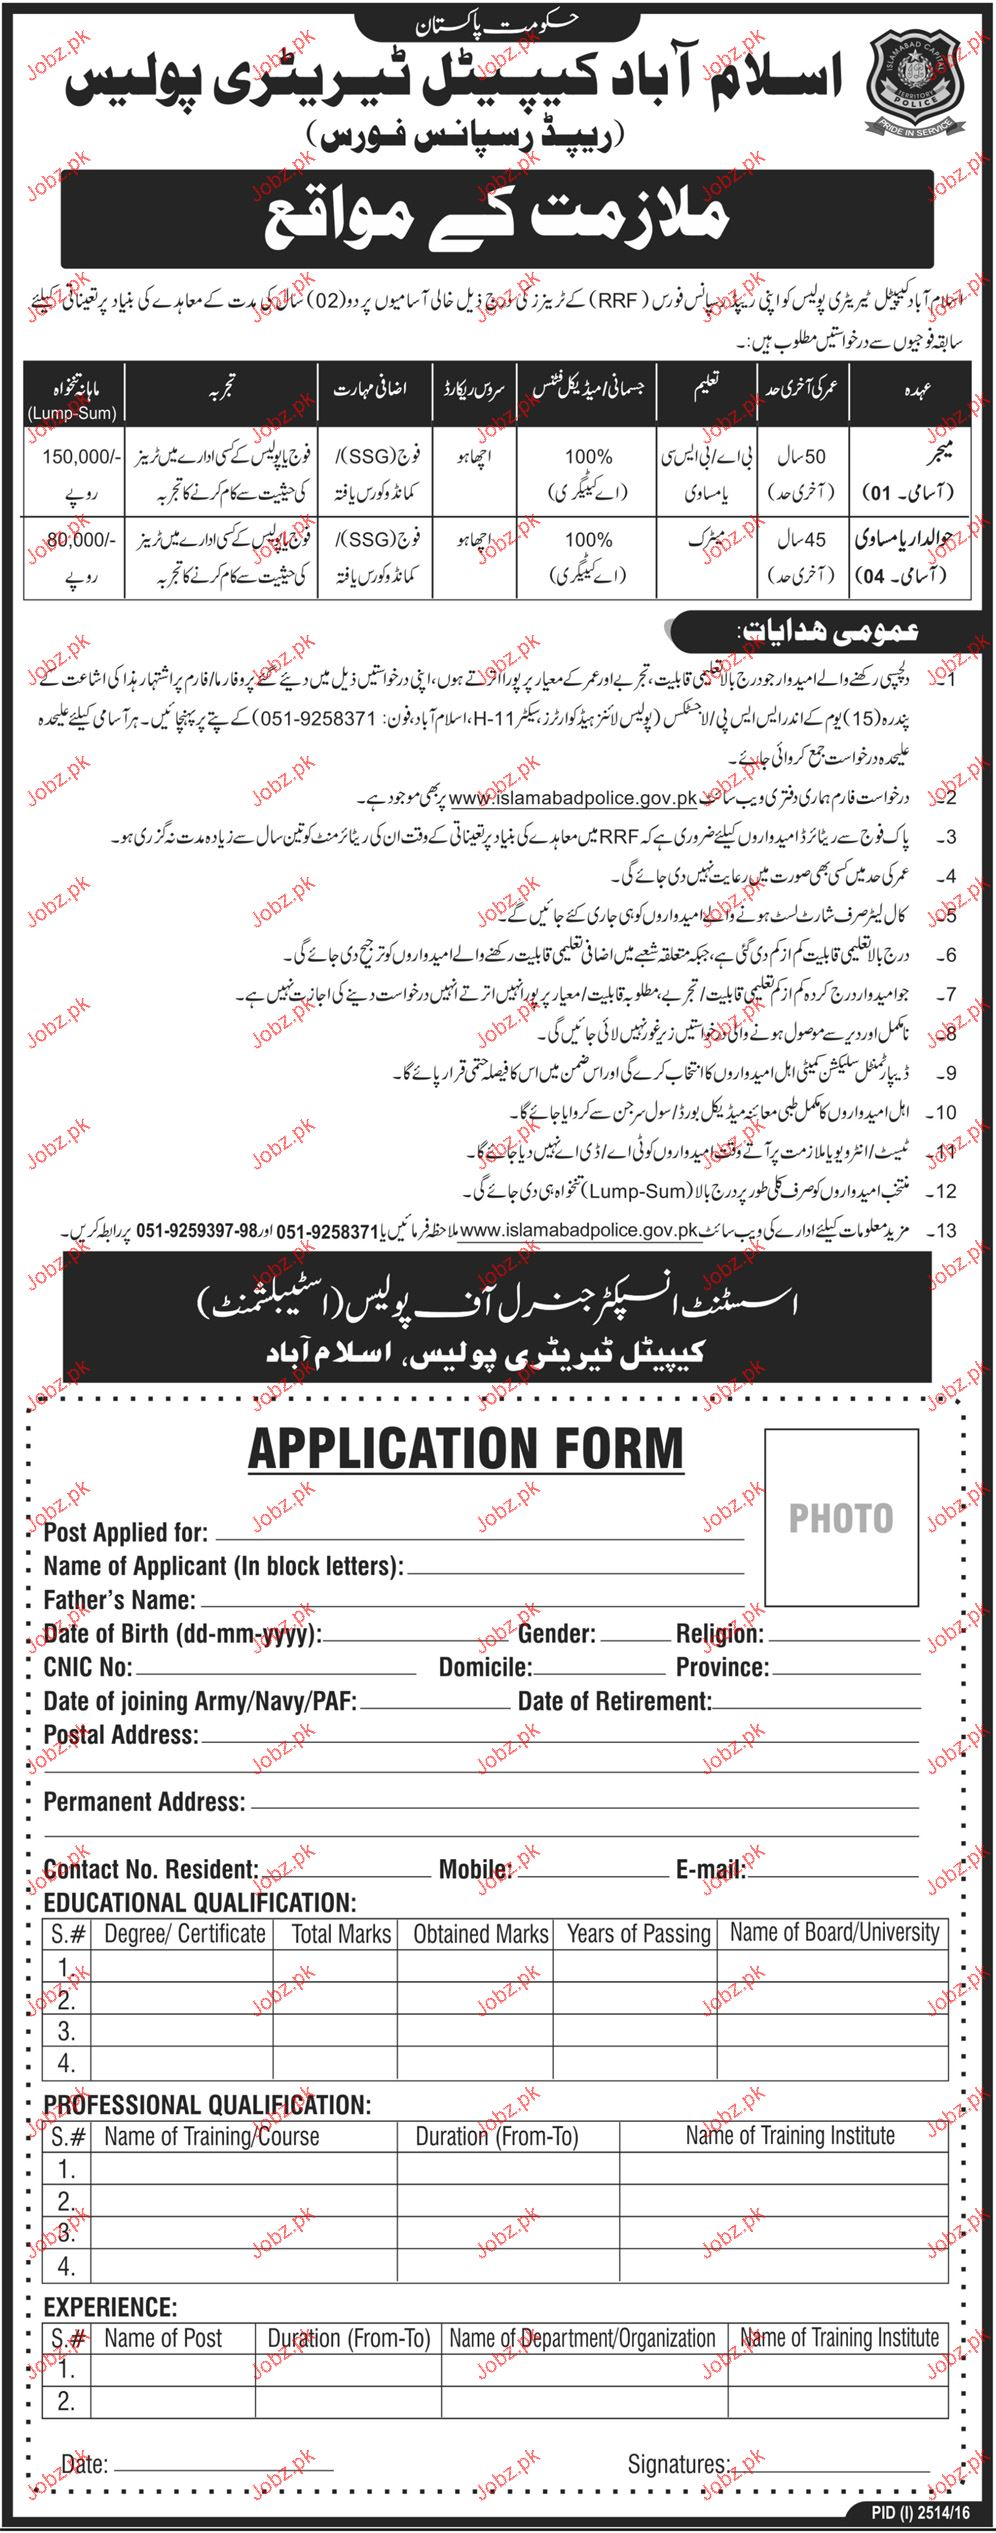 Army Retired Major and Havaldars Job in Islamabad Police